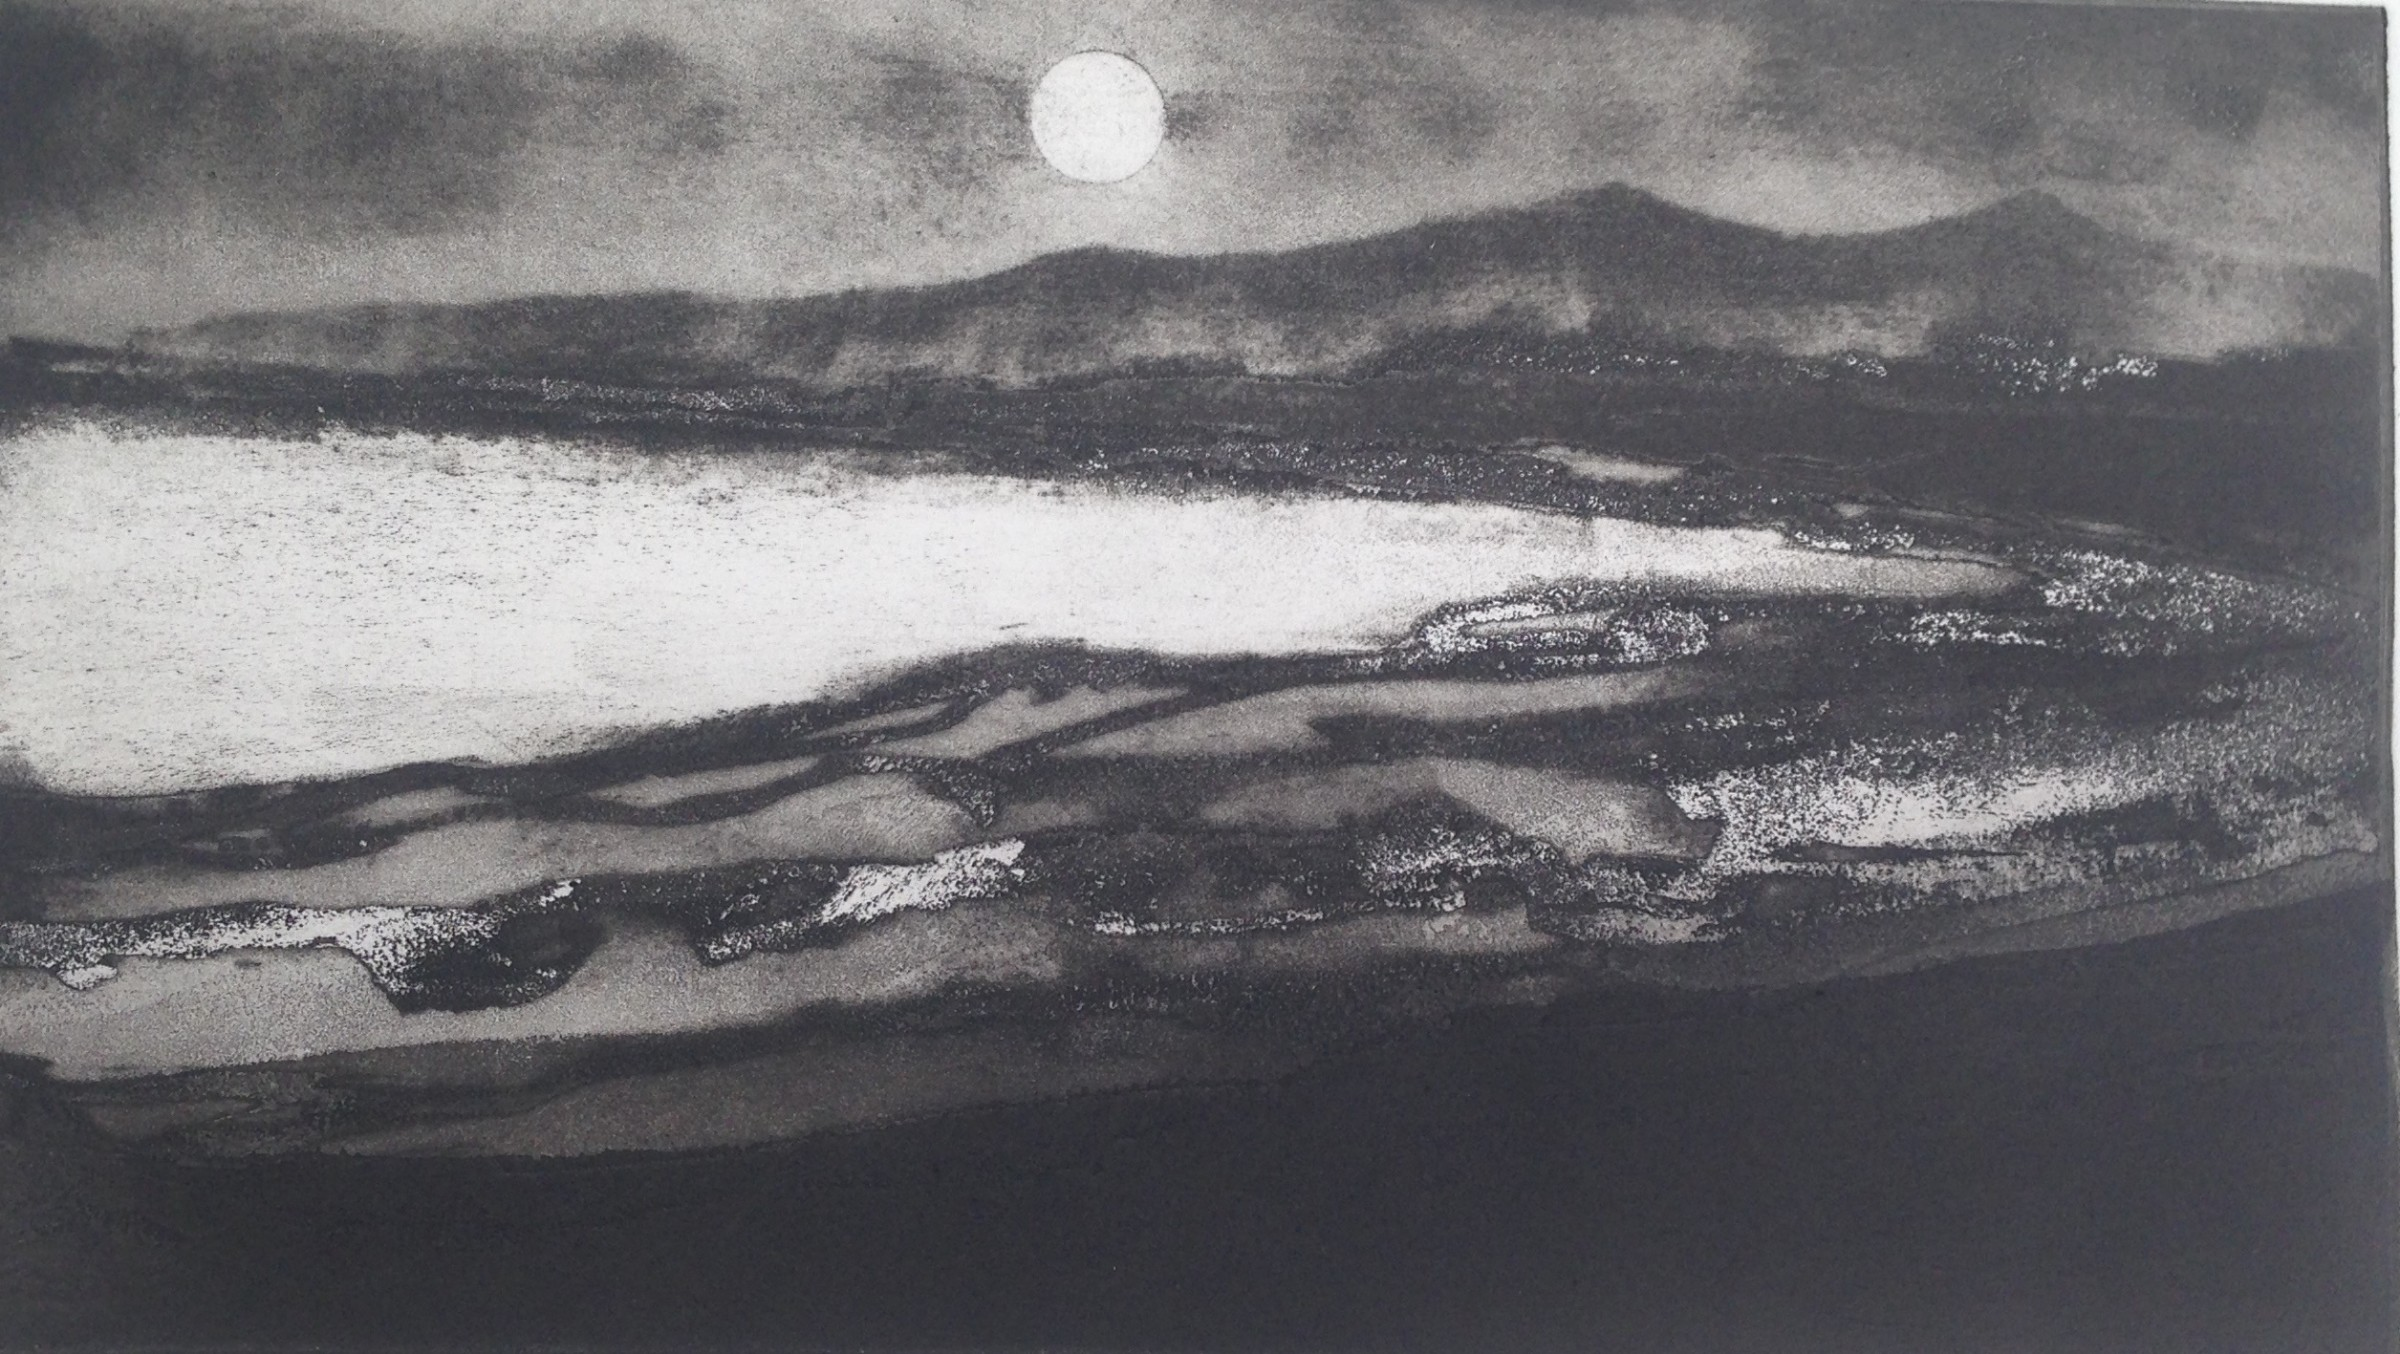 """<span class=""""link fancybox-details-link""""><a href=""""/exhibitions/11/works/image_standalone107/"""">View Detail Page</a></span><p>JASON HICKLIN RE<br /><br /></p><p><em>Moon over St Kilda after FS</em>, 2017</p><p>etching and aquatint</p><p>Inspired by Frank Short RA PPRE</p><p></p><p>Part of the Print REbels Portfolio (and featured in the box set)</p><p></p><p>""""<b>Sir Frank Short RA PPRE (1857-1945)</b> was a fellow West Midlander and etcher; walking on the island, I witnessed the moon over St Kilda and it immediately brought Frank Short's work to mind, together with a feeling of being a long way from home.""""<br /> </p>"""